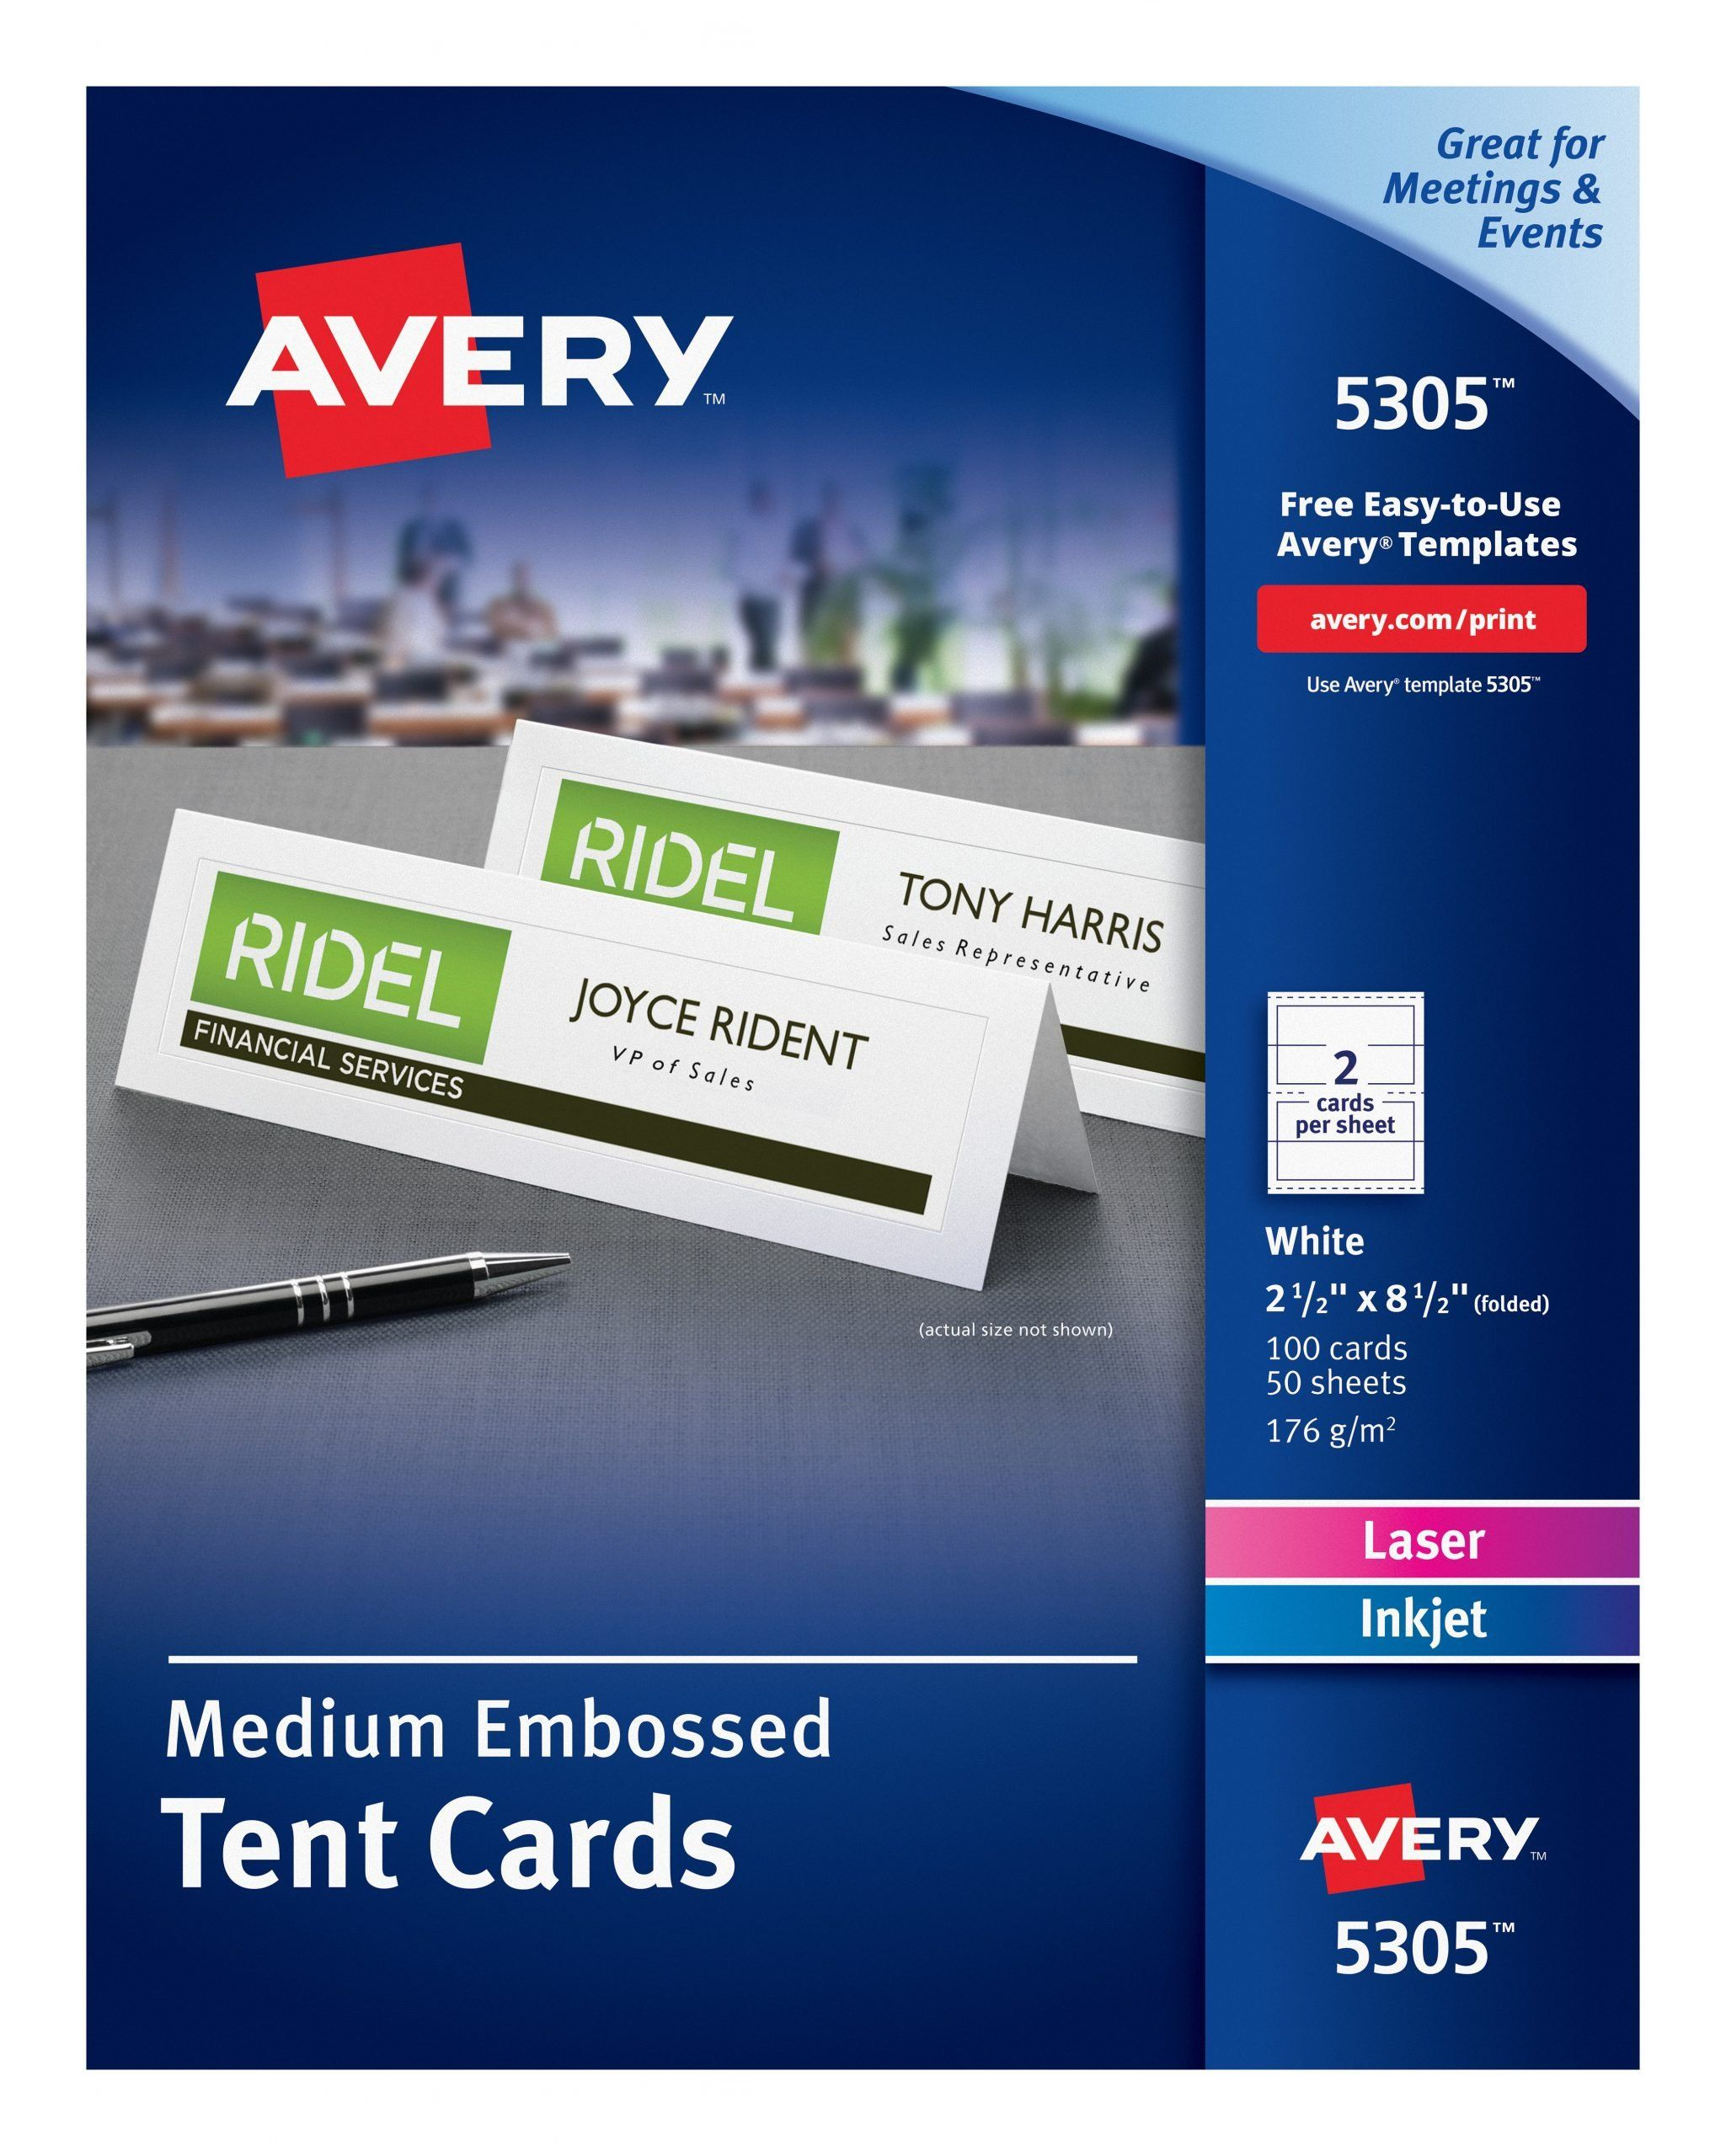 Staples Tent Cards Templates Awesome Avery Printable Tent Cards Embossed Uncoated Two Sided Printing 2 1 2 X 8 In 2020 Tent Cards Avery Printable Place Card Template